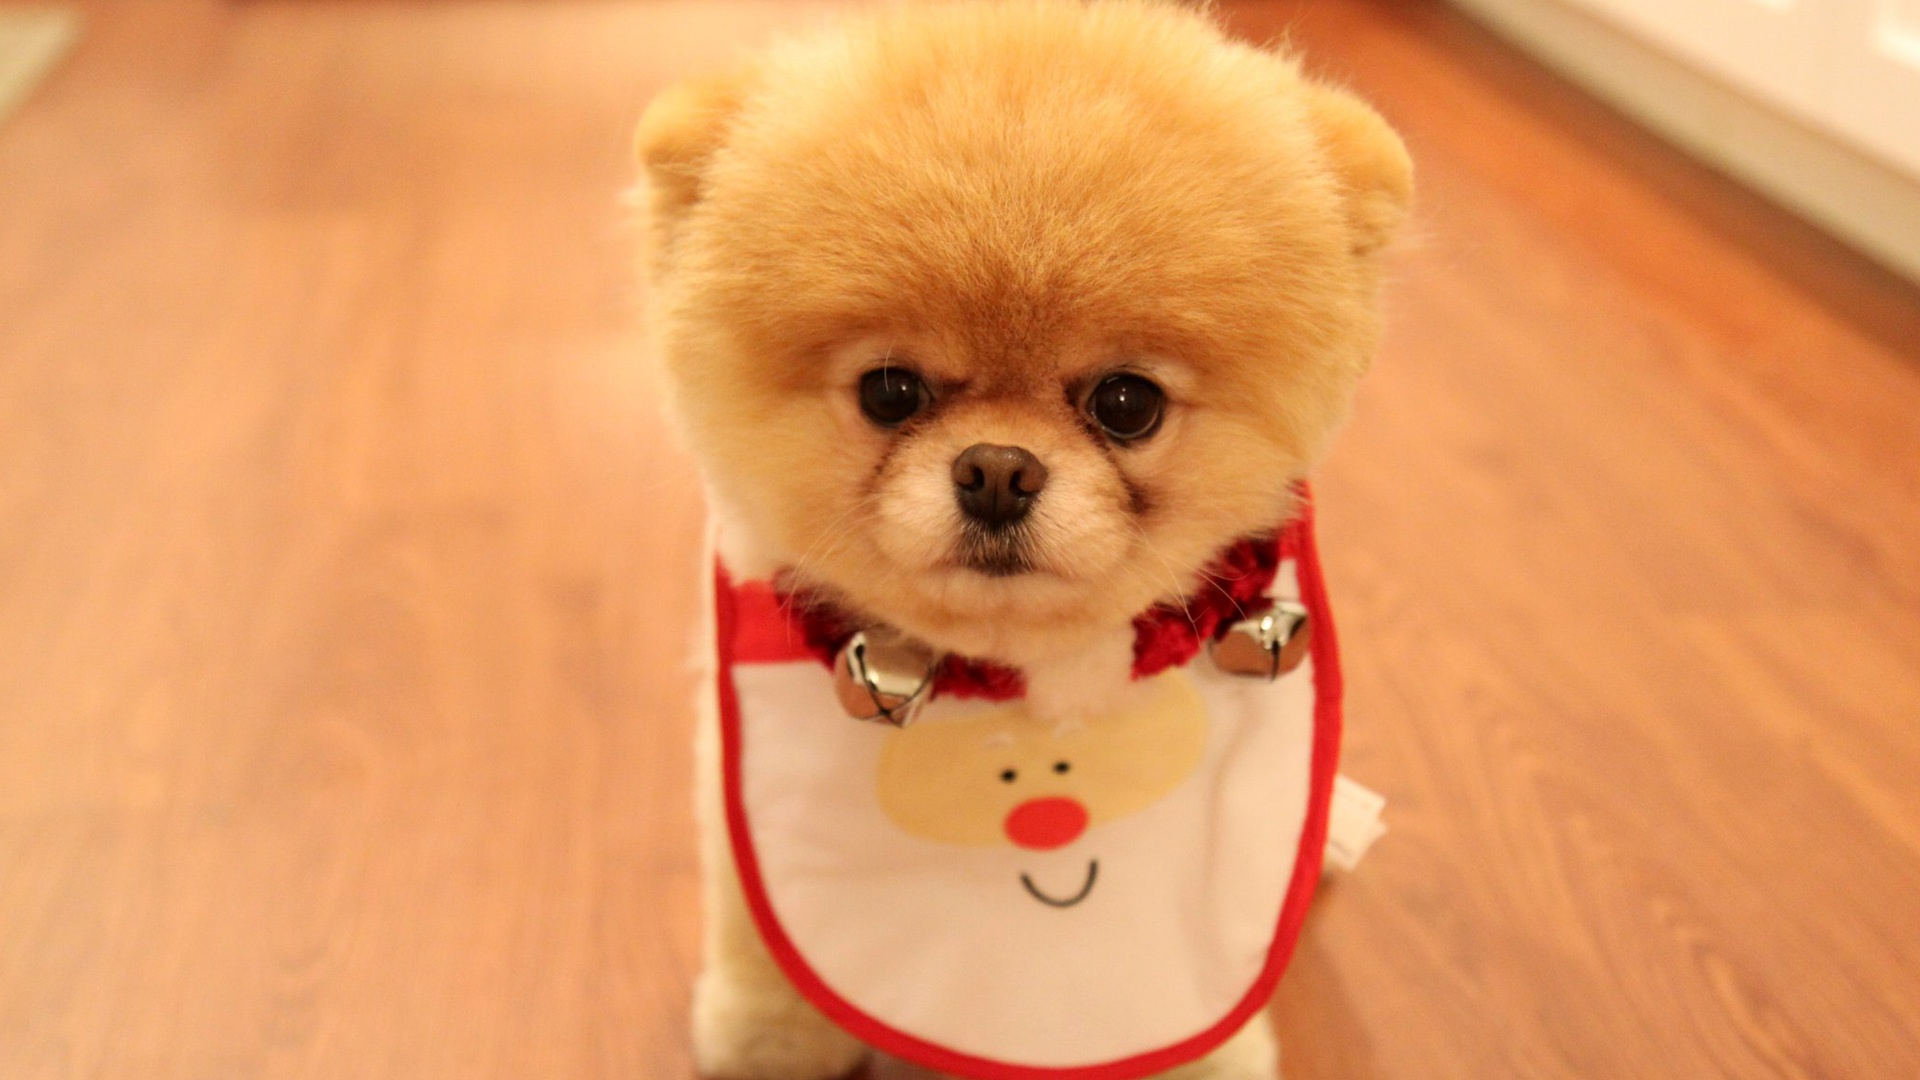 Must see Pomeranian Anime Adorable Dog - cute_dog_christmas_11054  Graphic_293536  .jpg